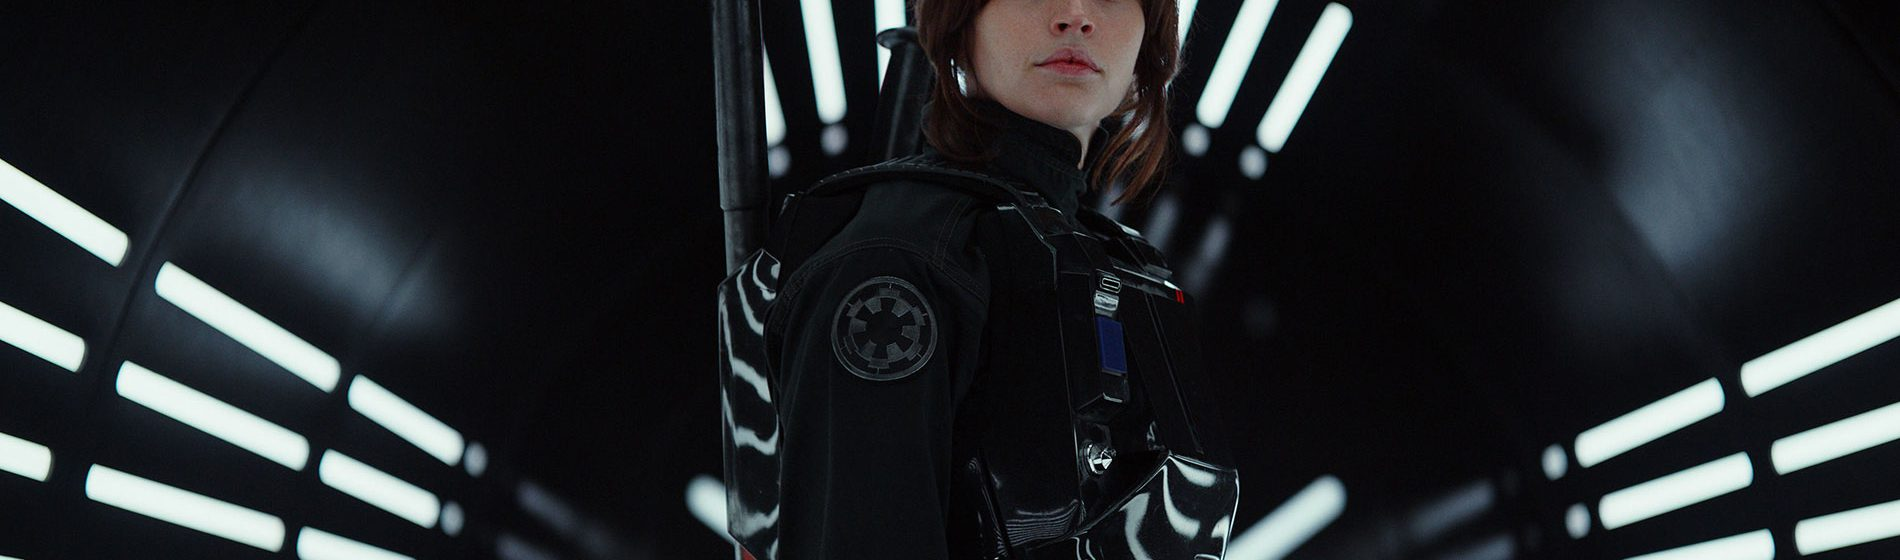 Rogue One: A Star Wars Story - Jyn Erso